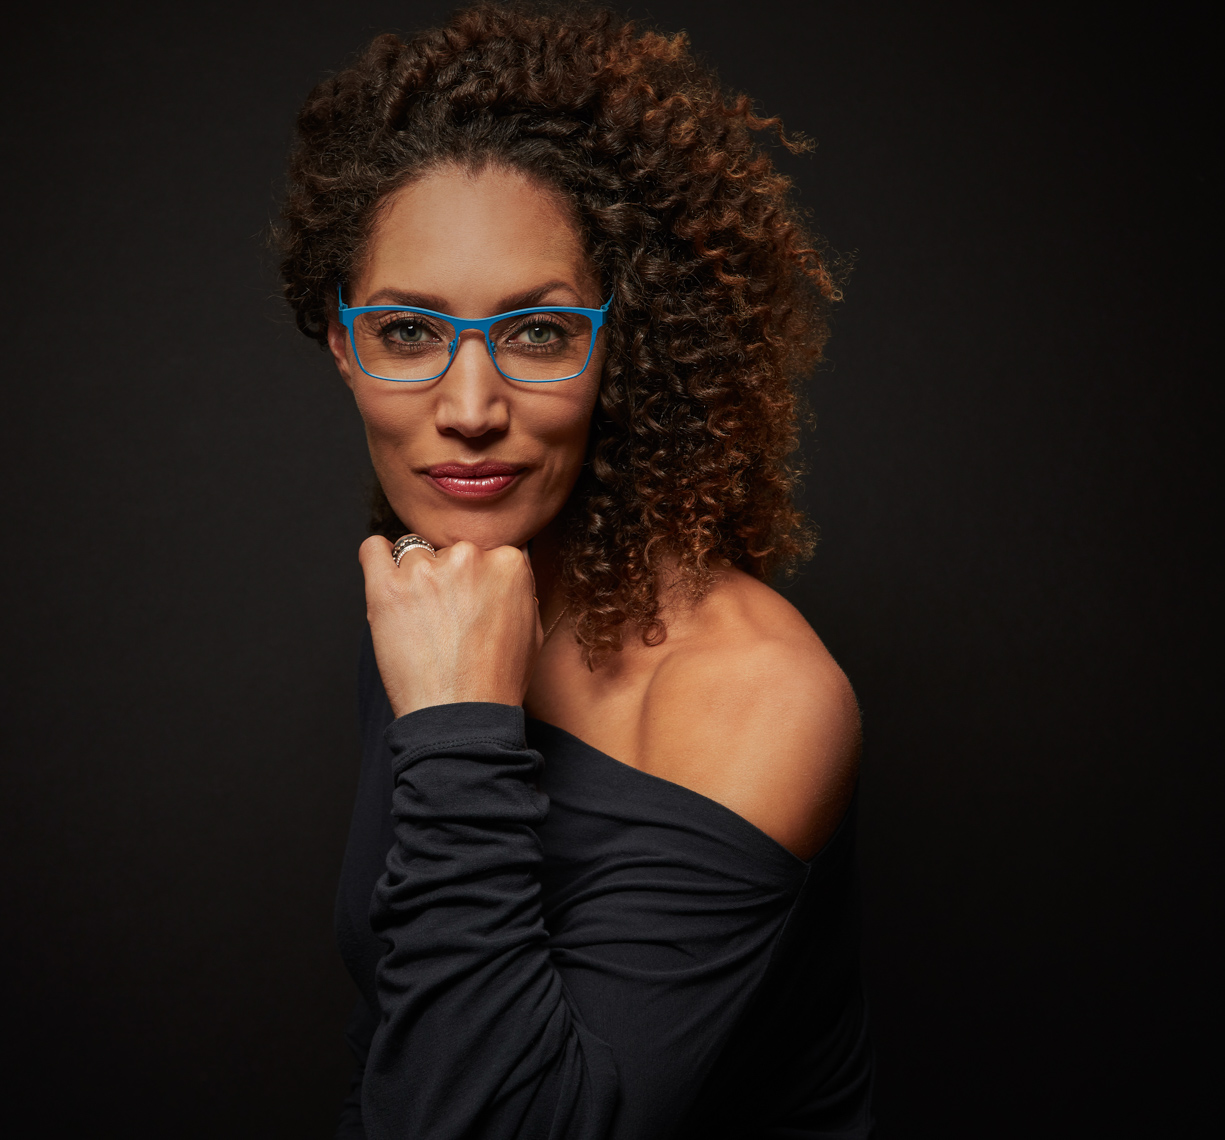 Woman with dark curly hair wearing black blouse with bare shoulder looking at camera with chin in hand and blue eyewear and black background San Francisco fashion photographer